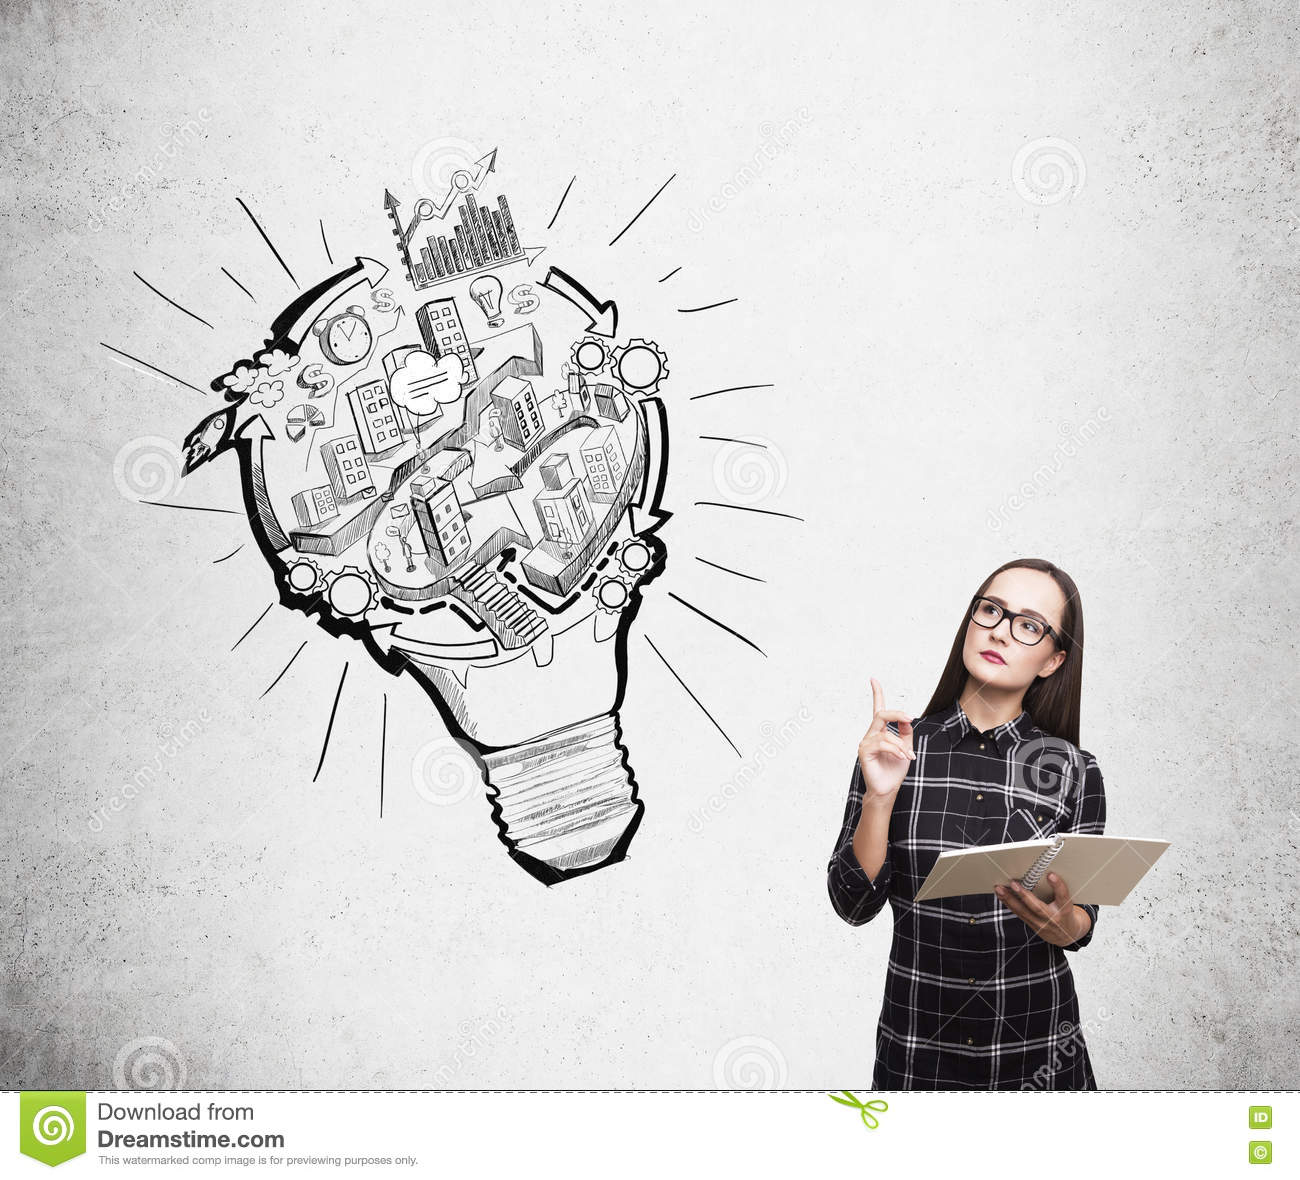 diagram of a nerd liver labeled girl in dress and urban sketch stock photo image